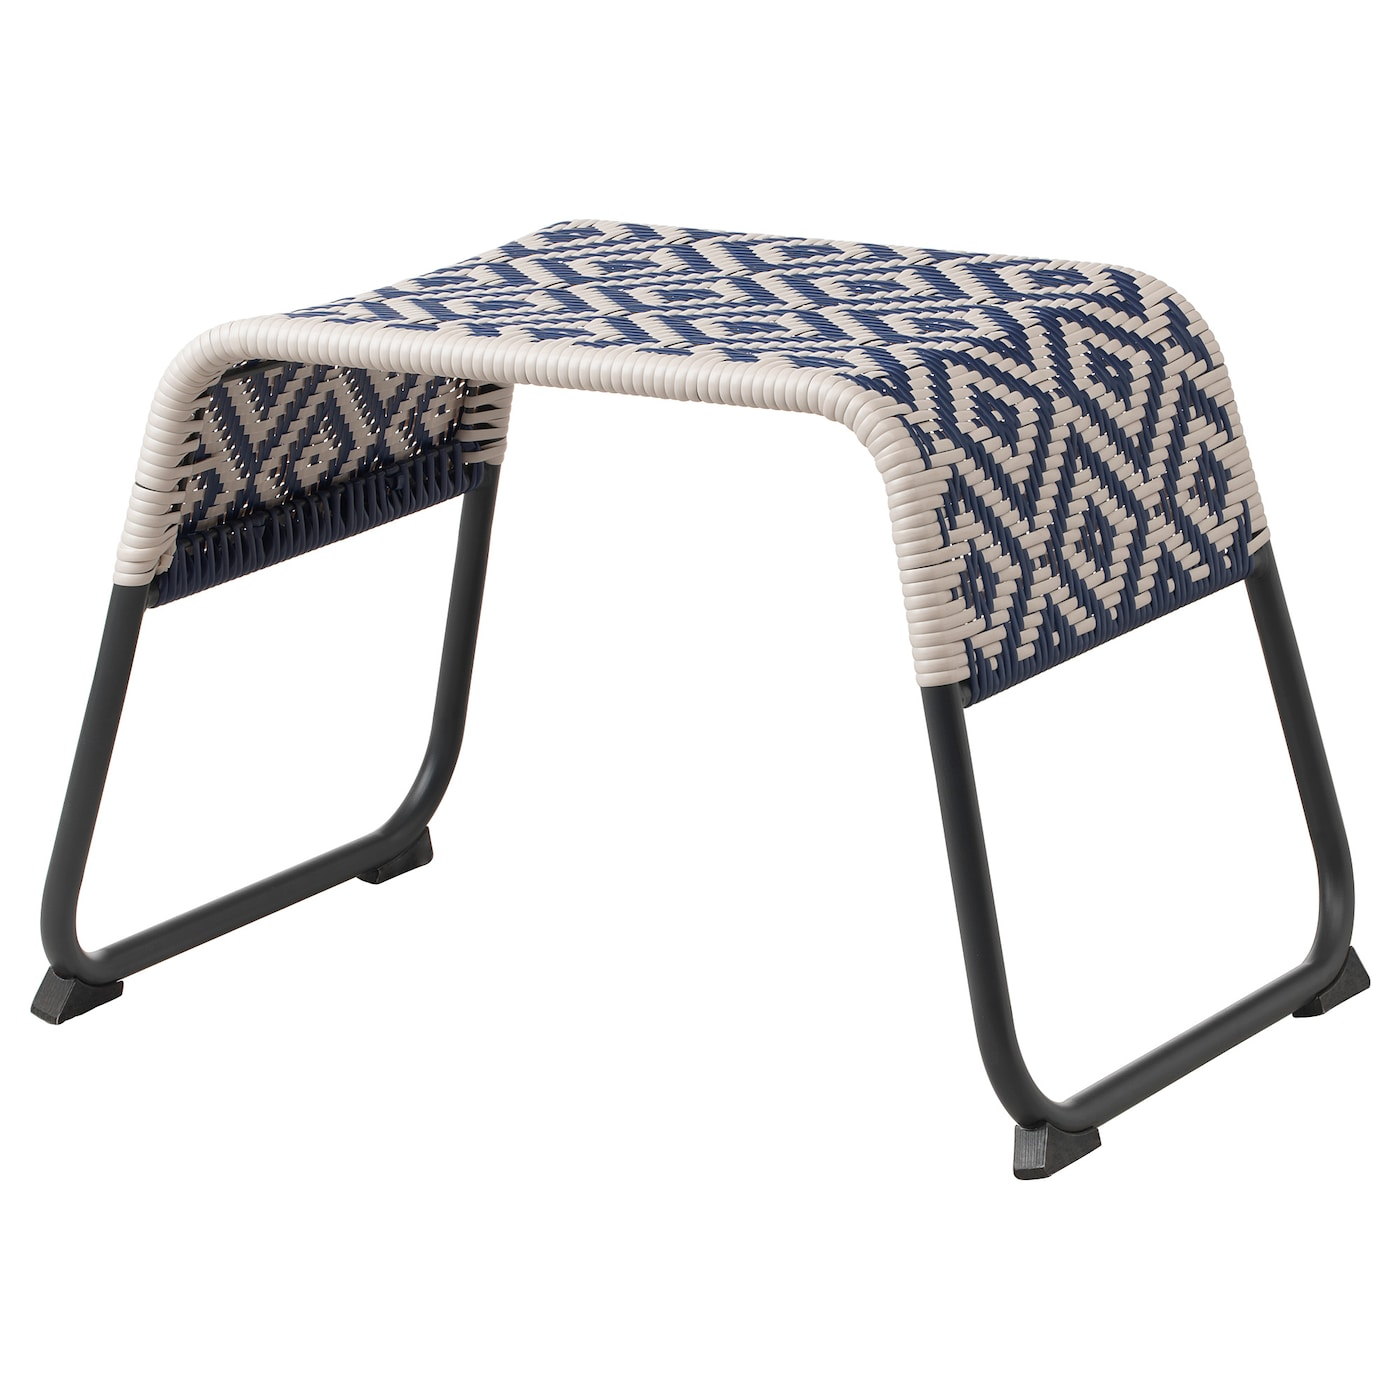 IKEA ÖVERALLT footstool You can use it as an extra seat for guests or as a footstool.